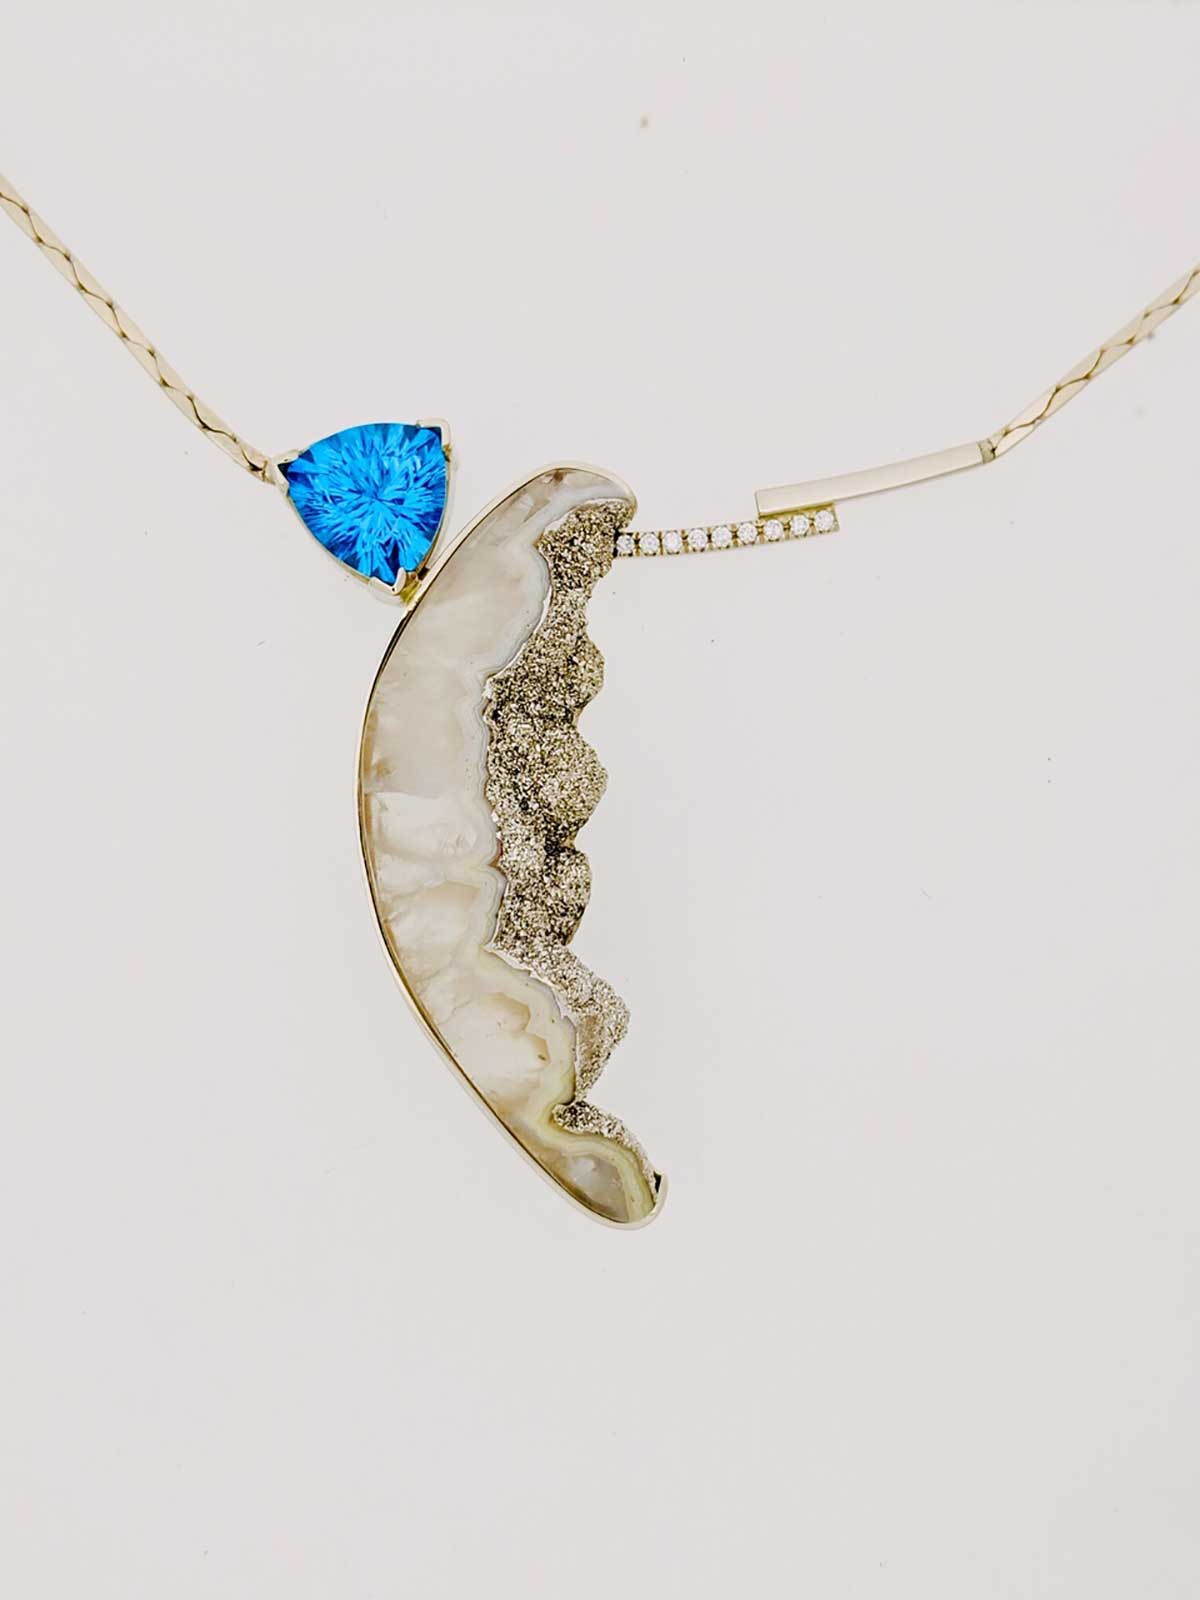 14k yellow gold necklace displaying a Platinum-coated, Druzy Agate with a Precision-cut, Blue Topaz trillion and accented with pave Diamonds